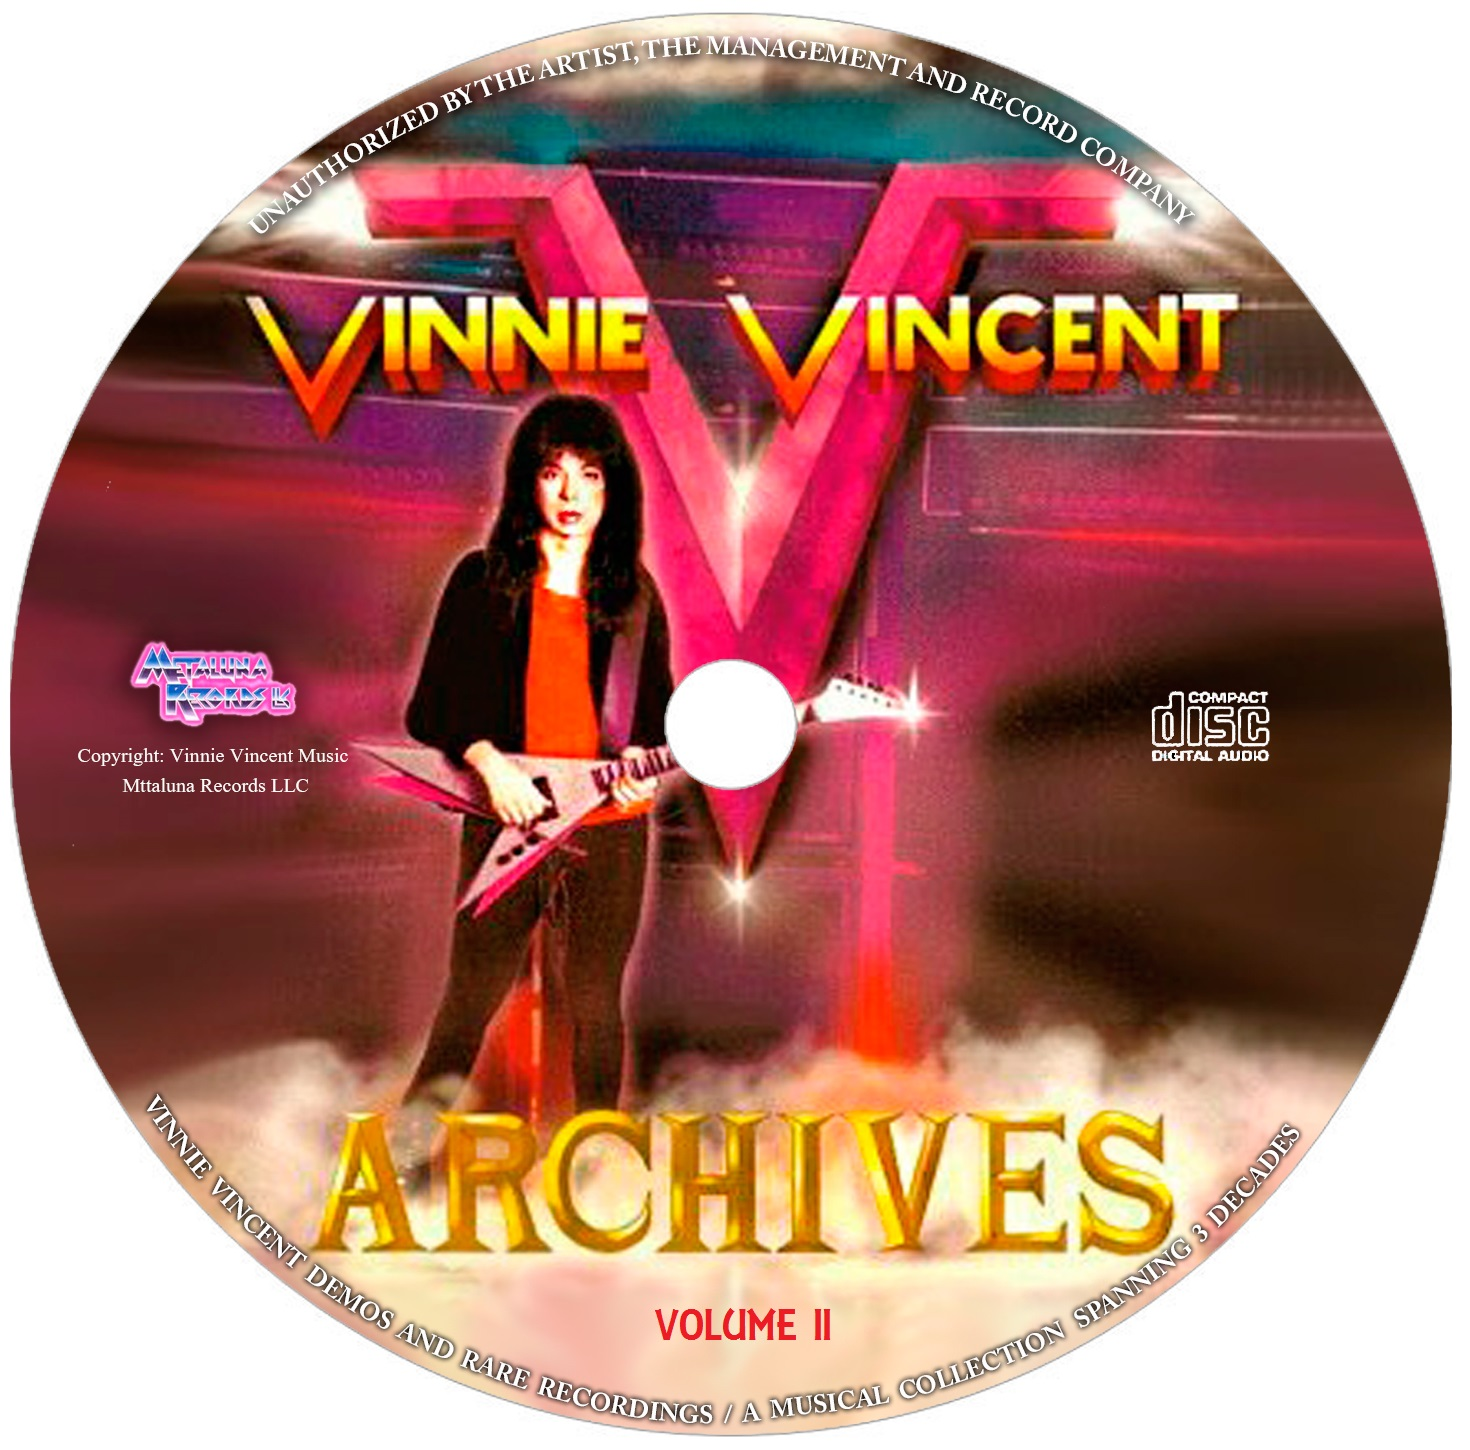 ring-archives-cd 2.jpg